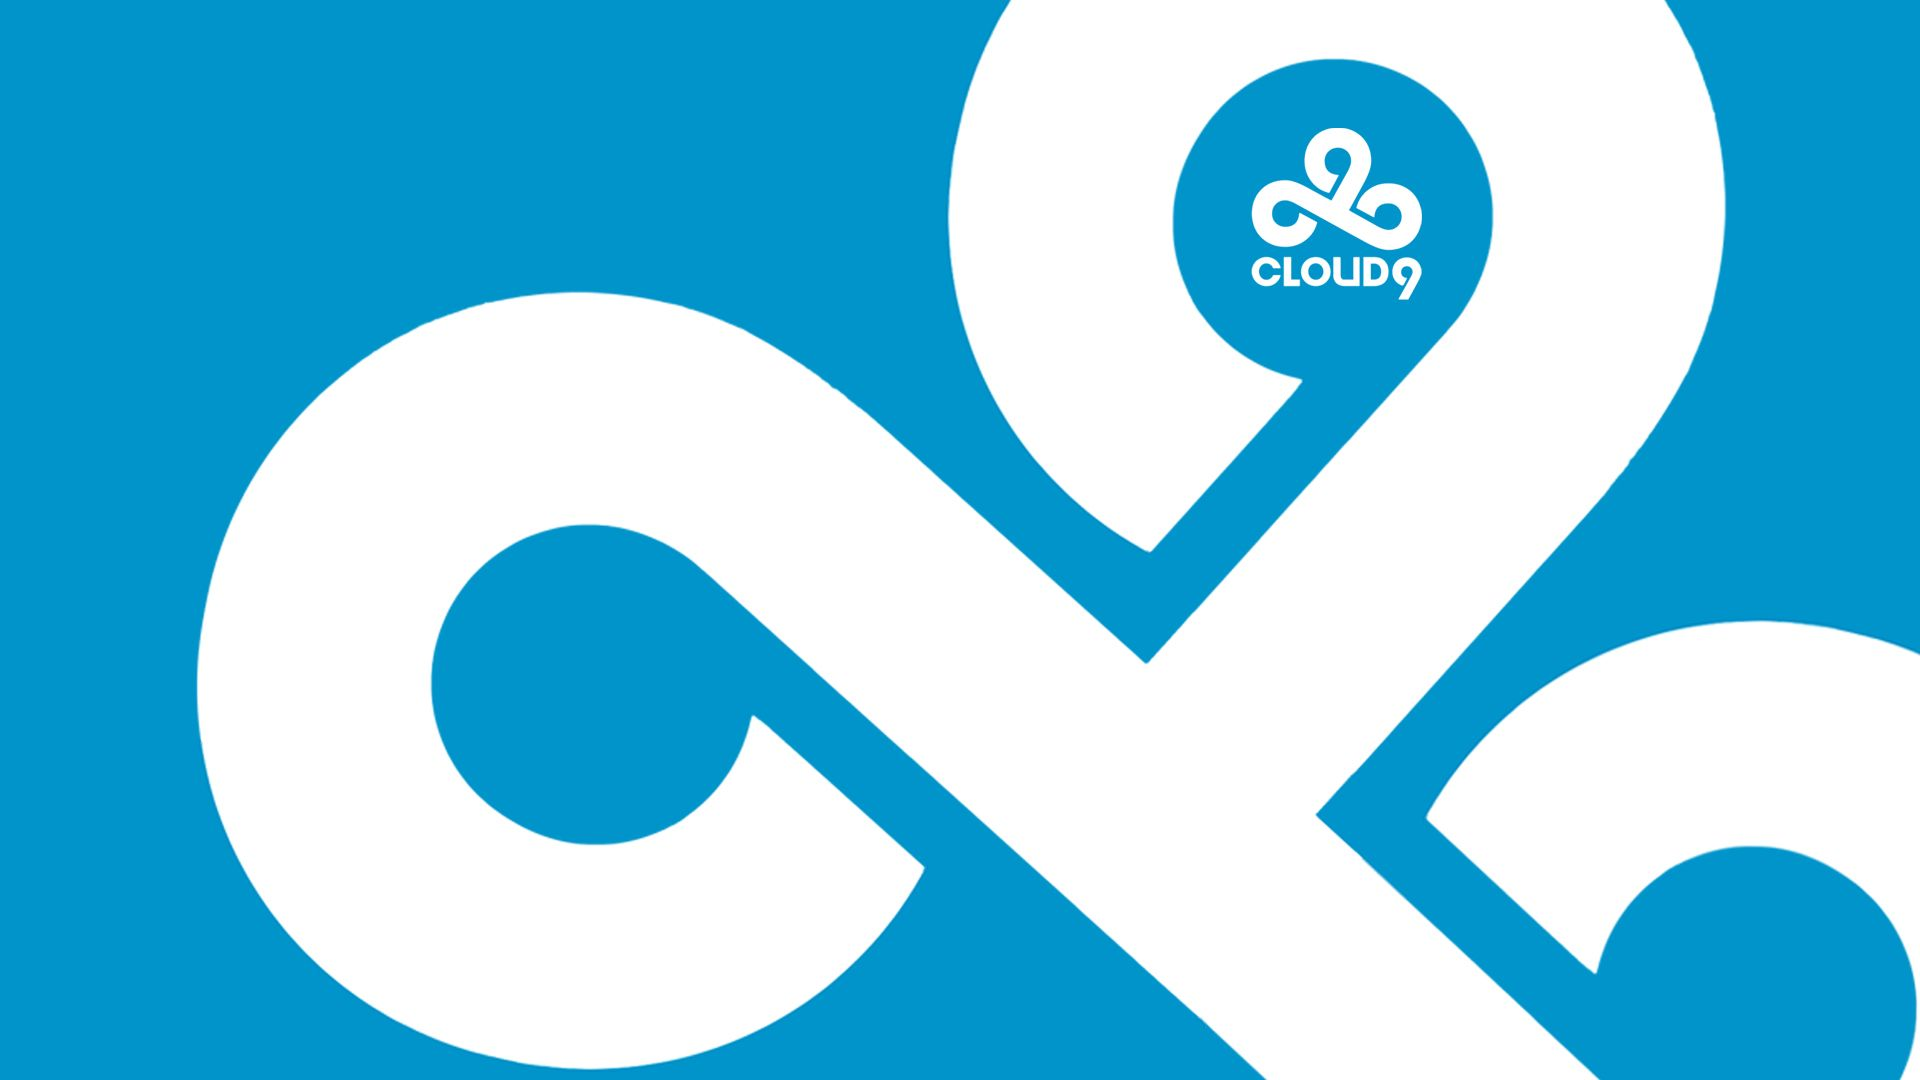 1920x1080 Simple Cloud9 Wallpaper based on the new jersey. : Cloud9